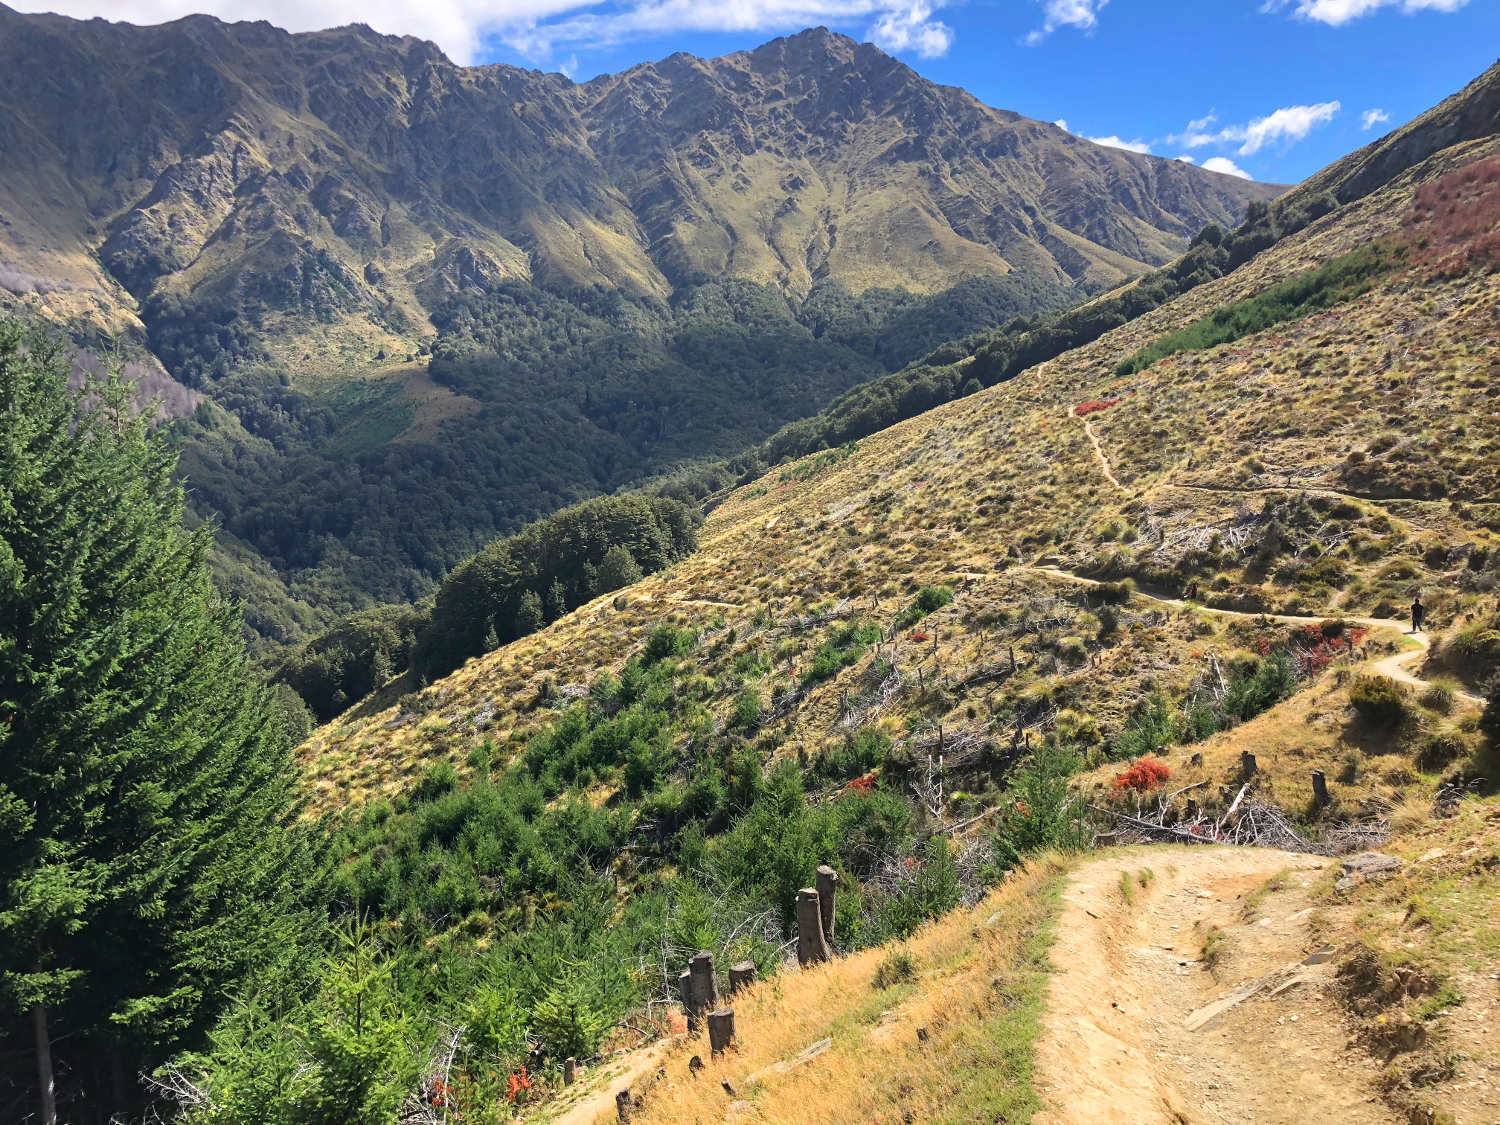 Southern Scenic Road Trip,New Zealand @Roving Clint